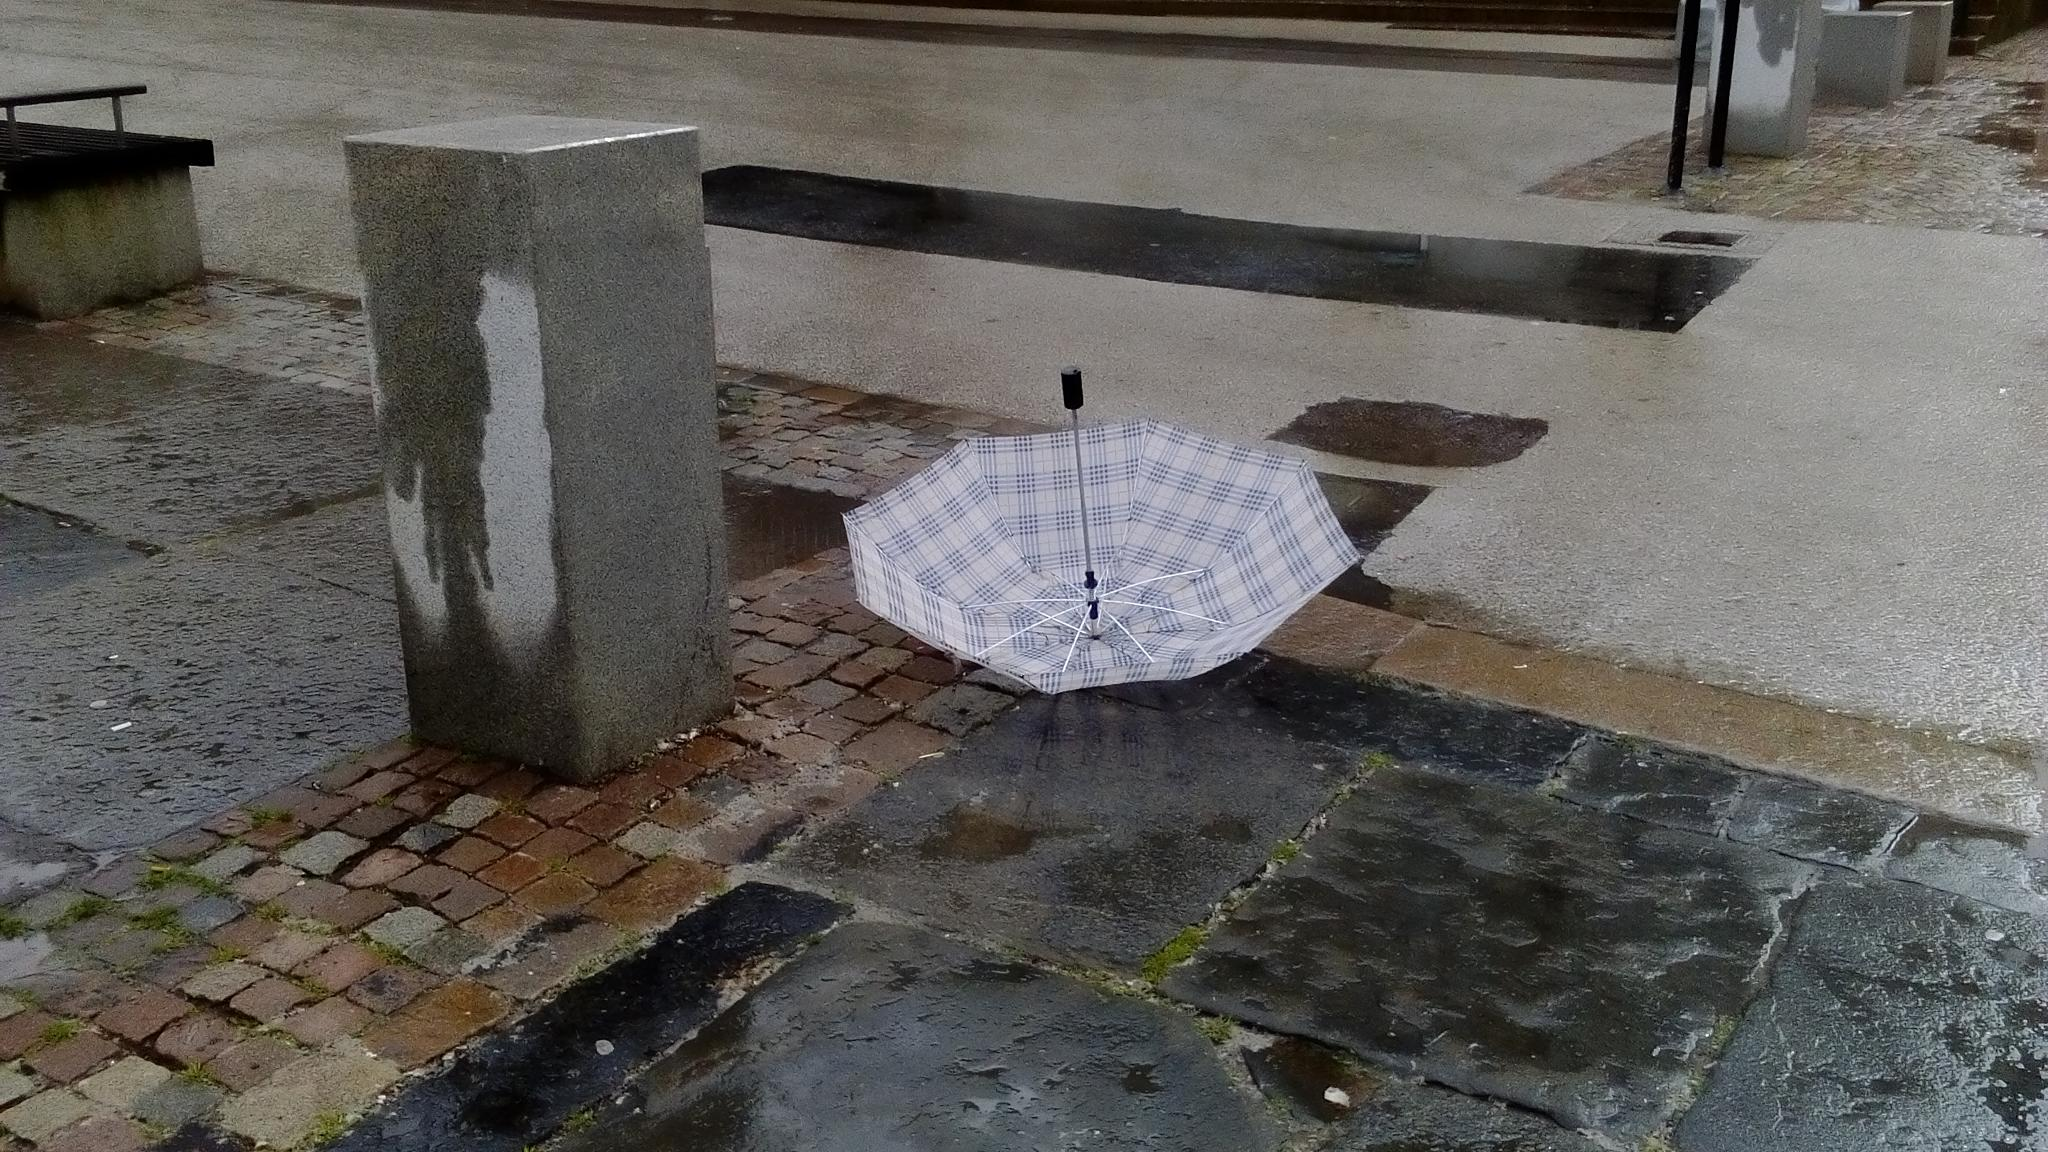 Lost umbrella by rolf persson